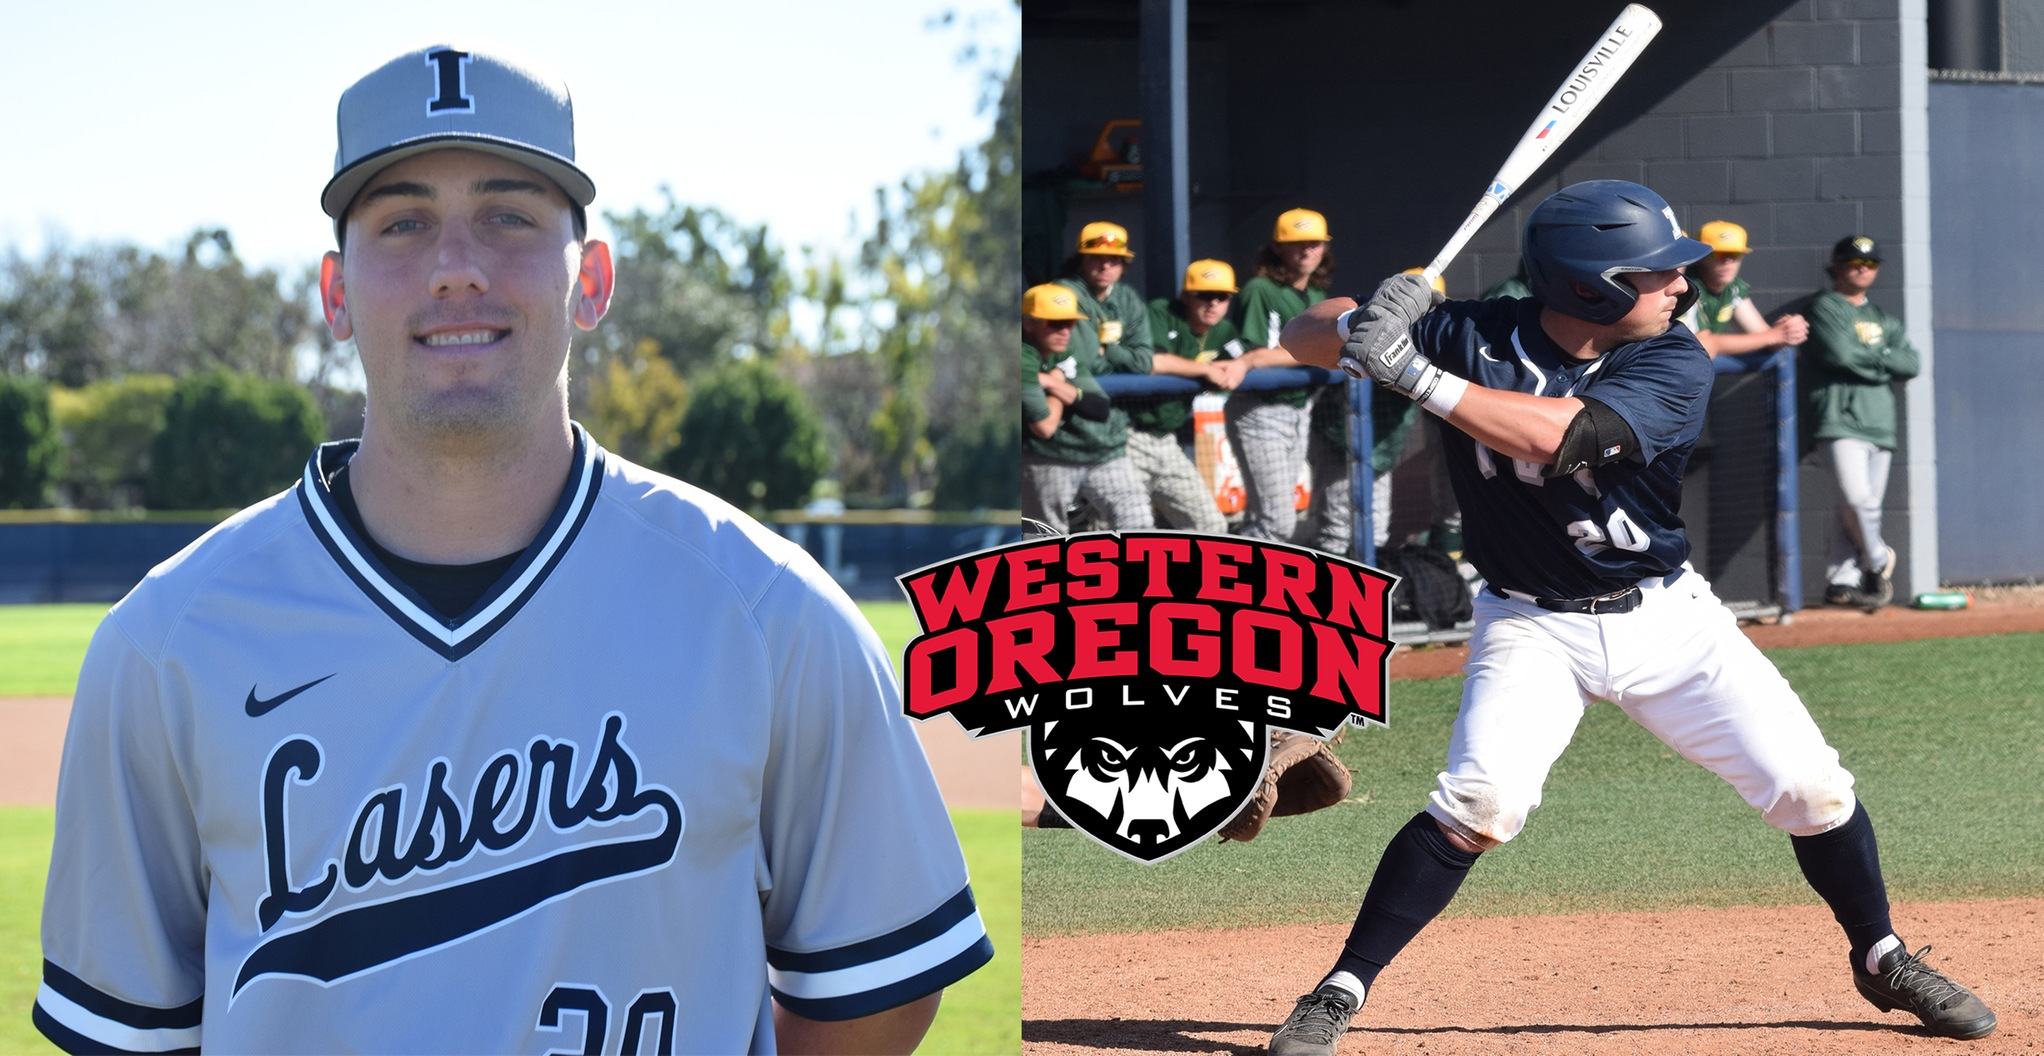 Baseball player Spencer Weston off to Western Oregon